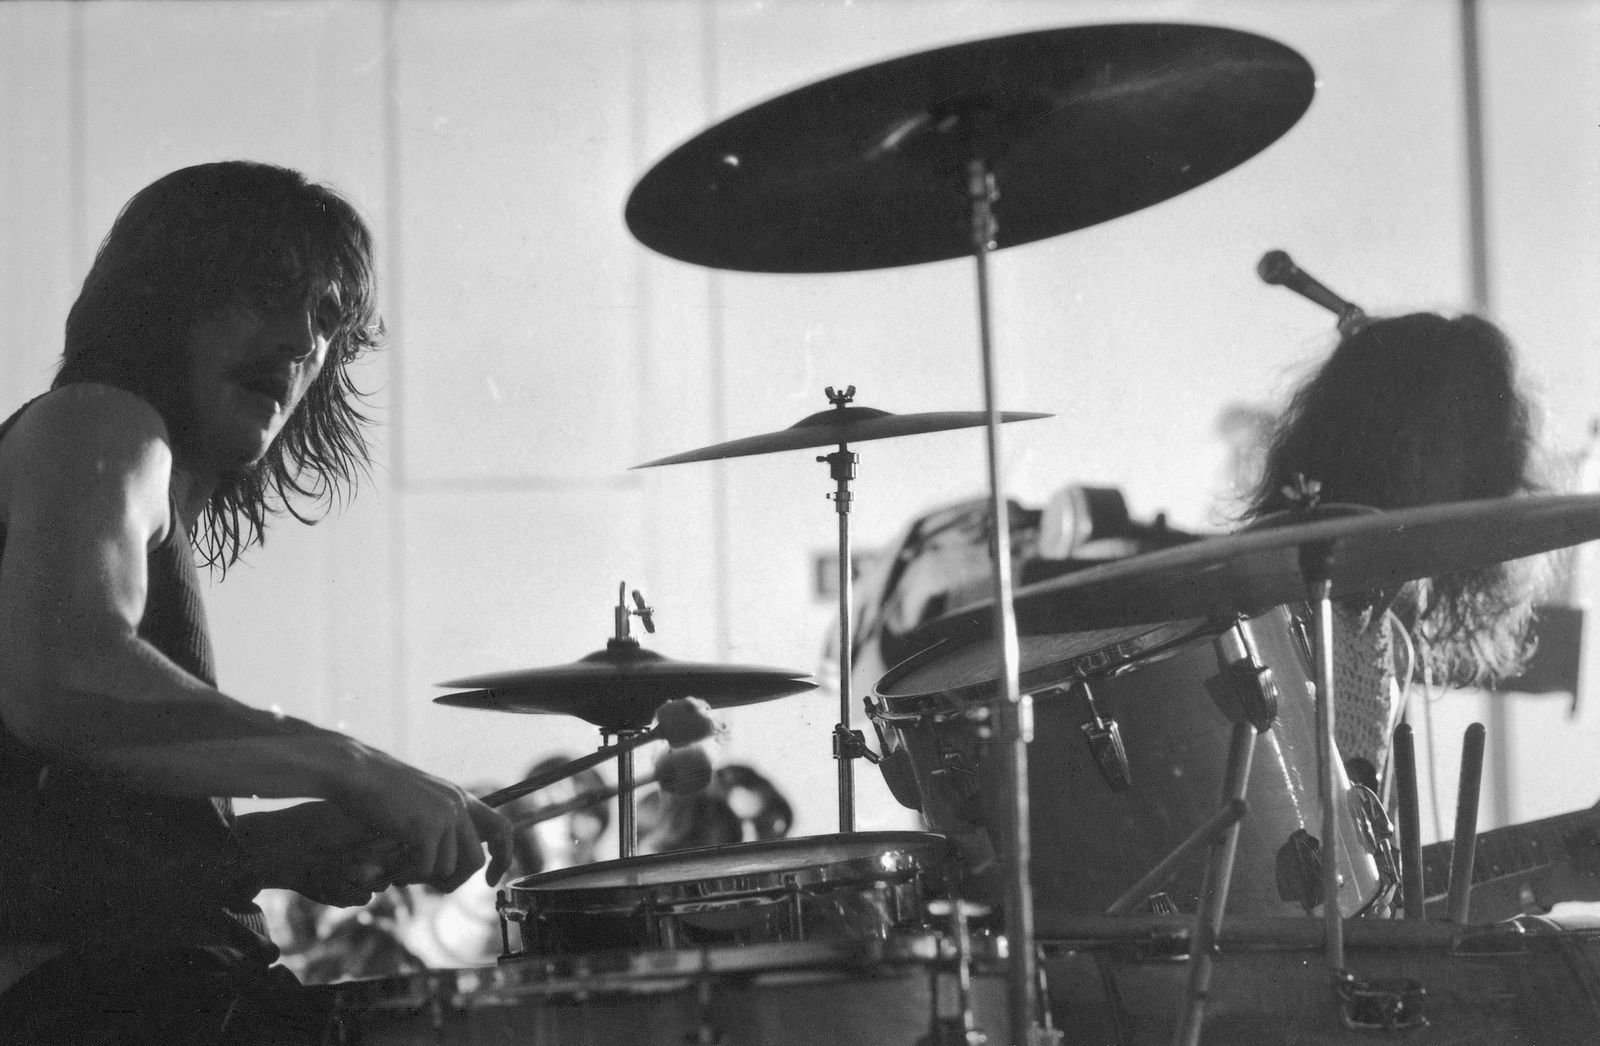 John Bonham, drummer of Led Zeppelin - Time & Life Pictures, credit: Getty images